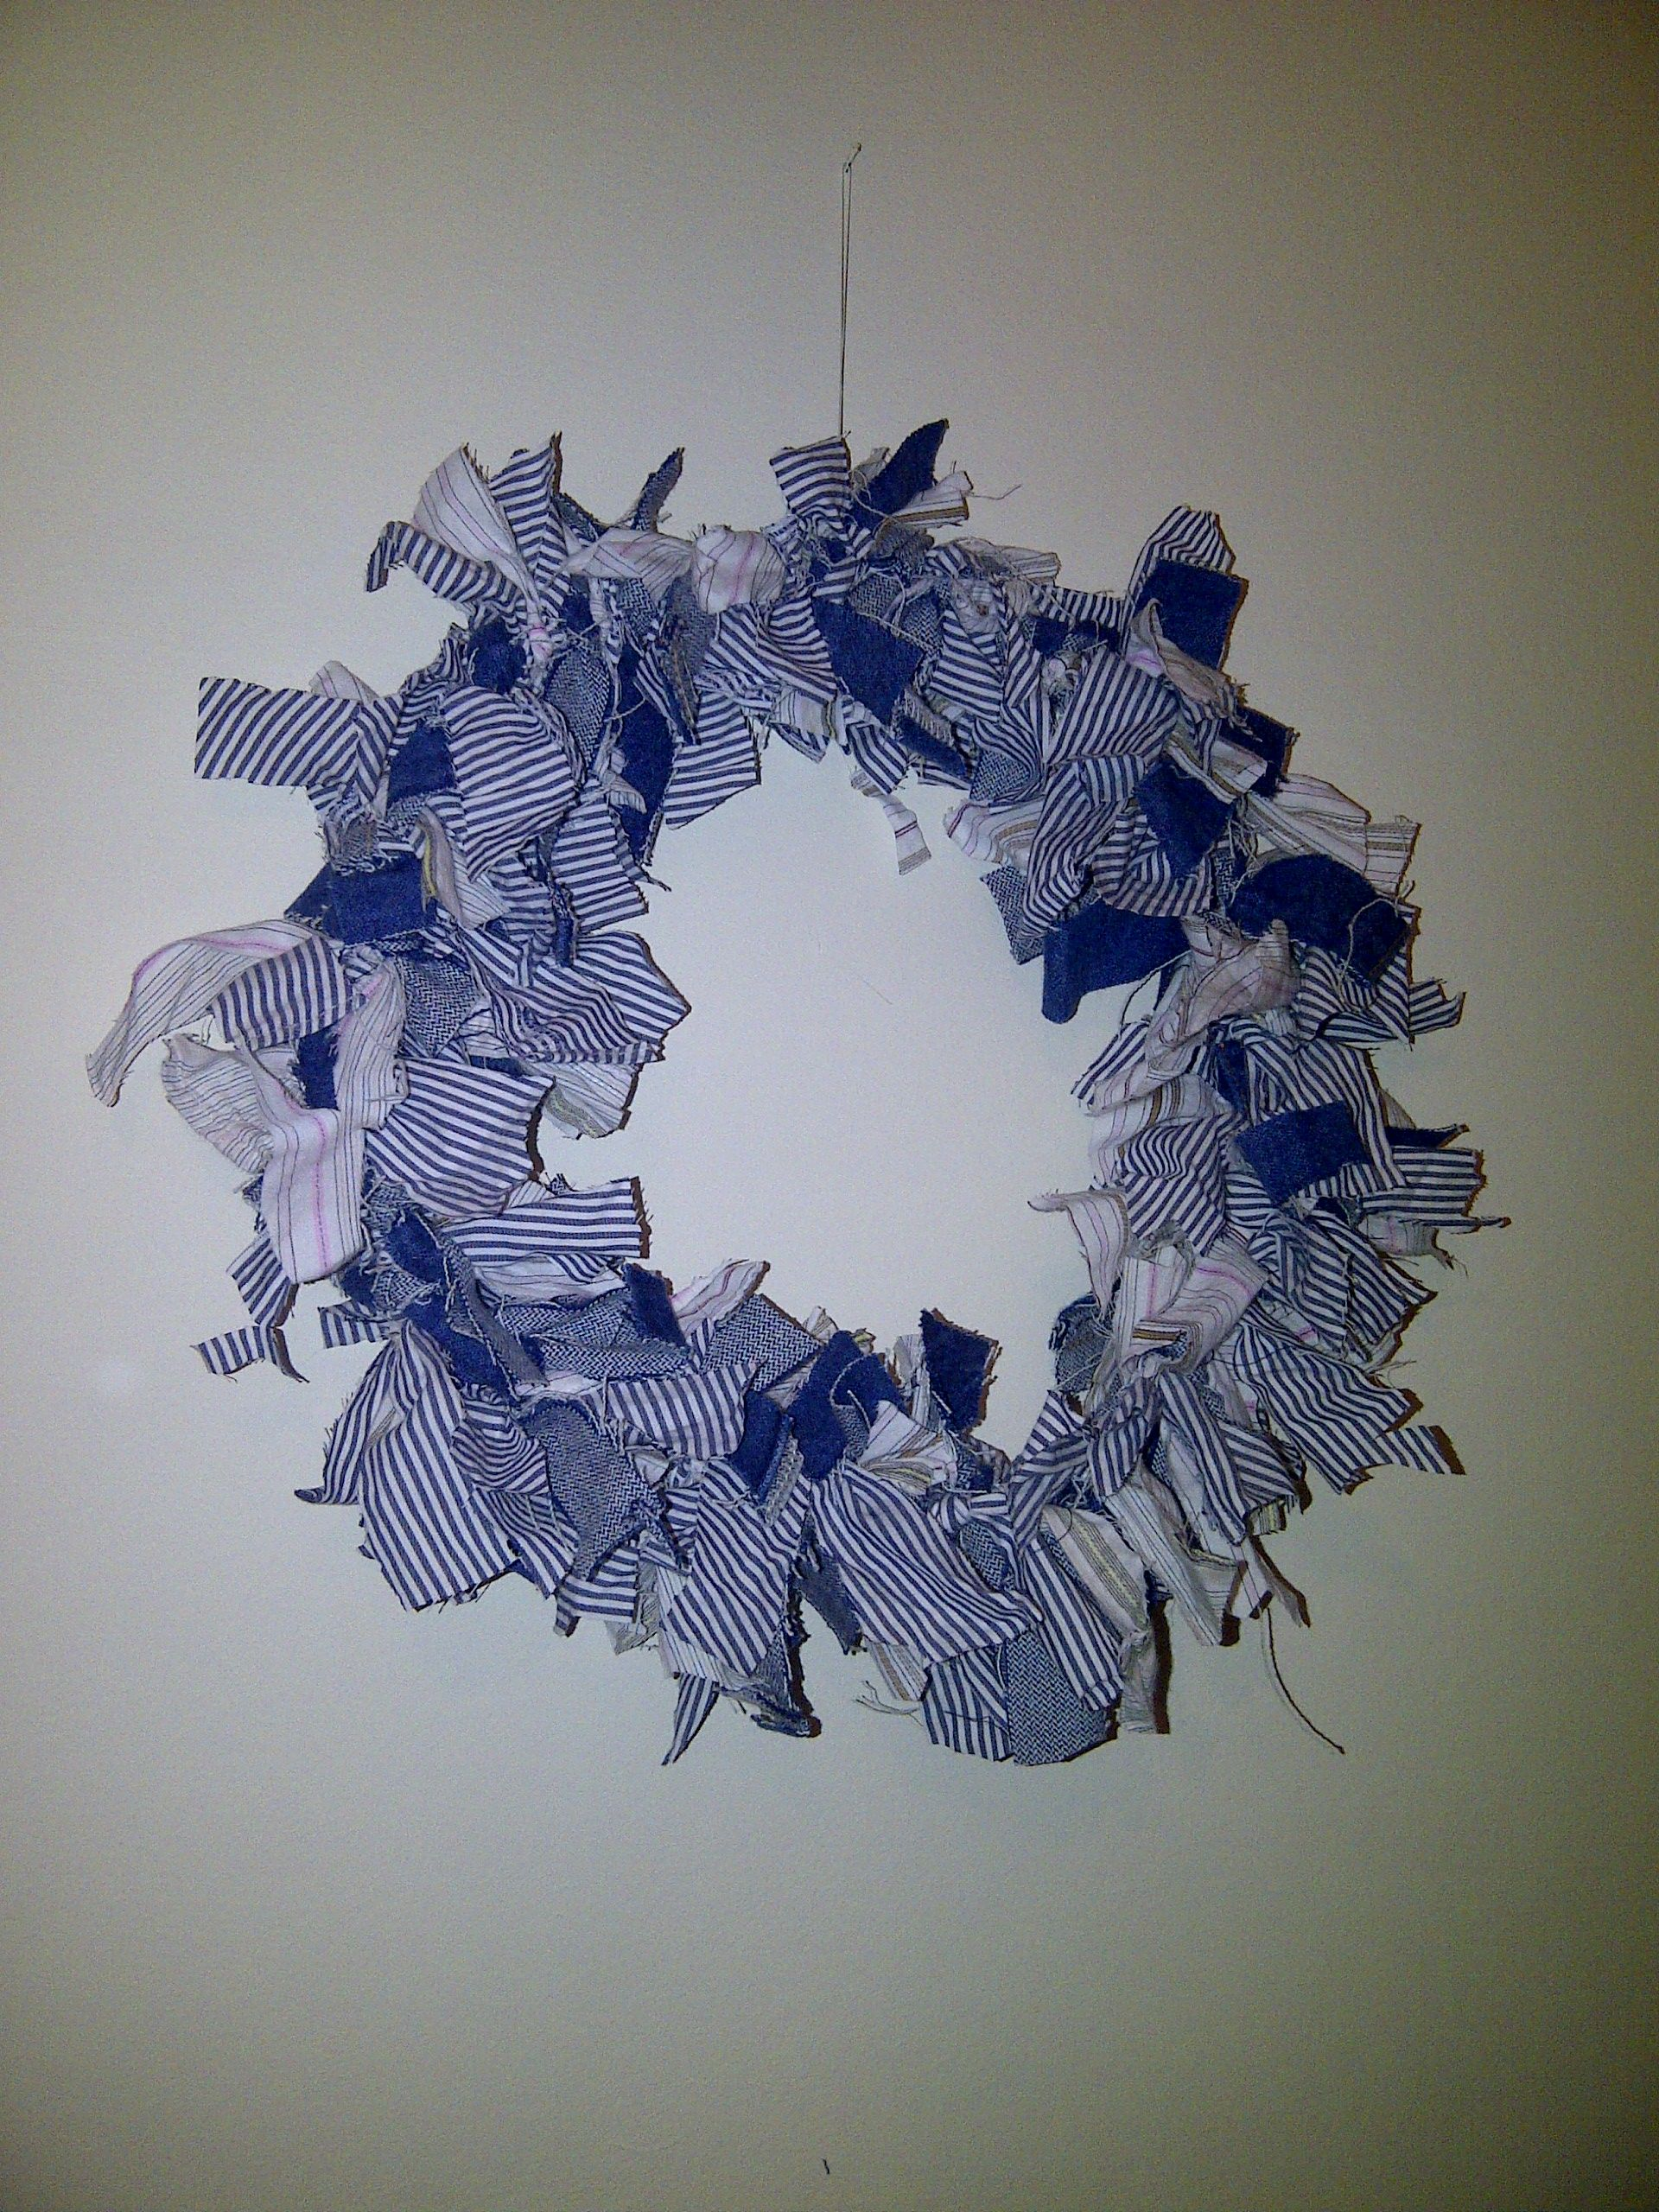 Nautical chic raggy wreath wall art for any room, one of my personal fave pieces